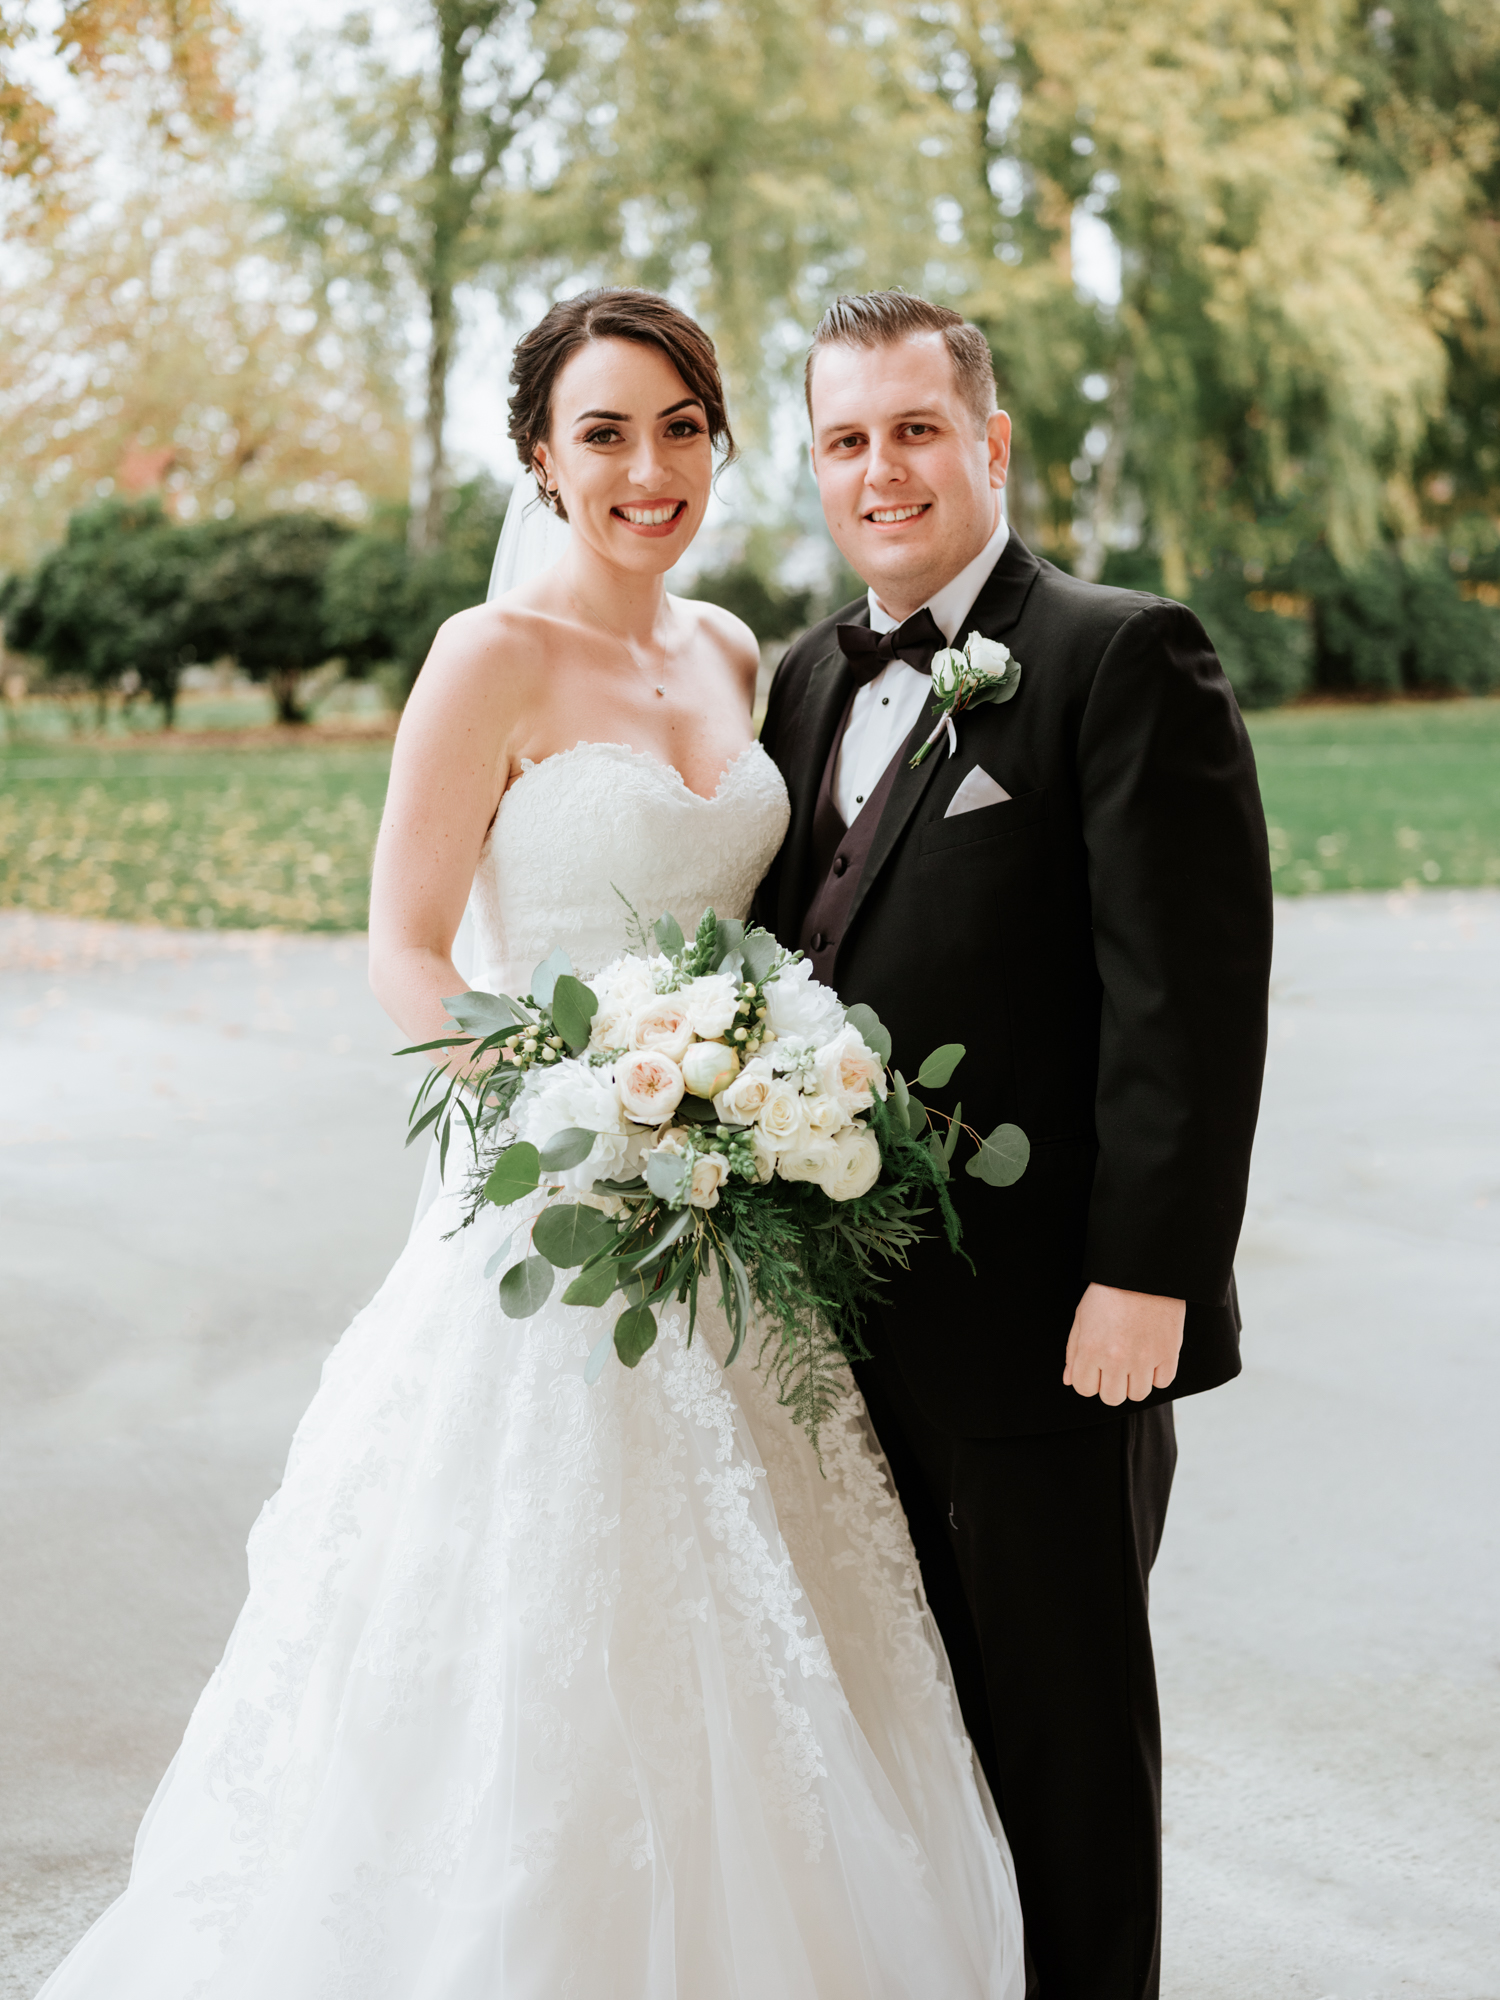 Stolen Glimpses Seattle Wedding Photographers 26.jpg